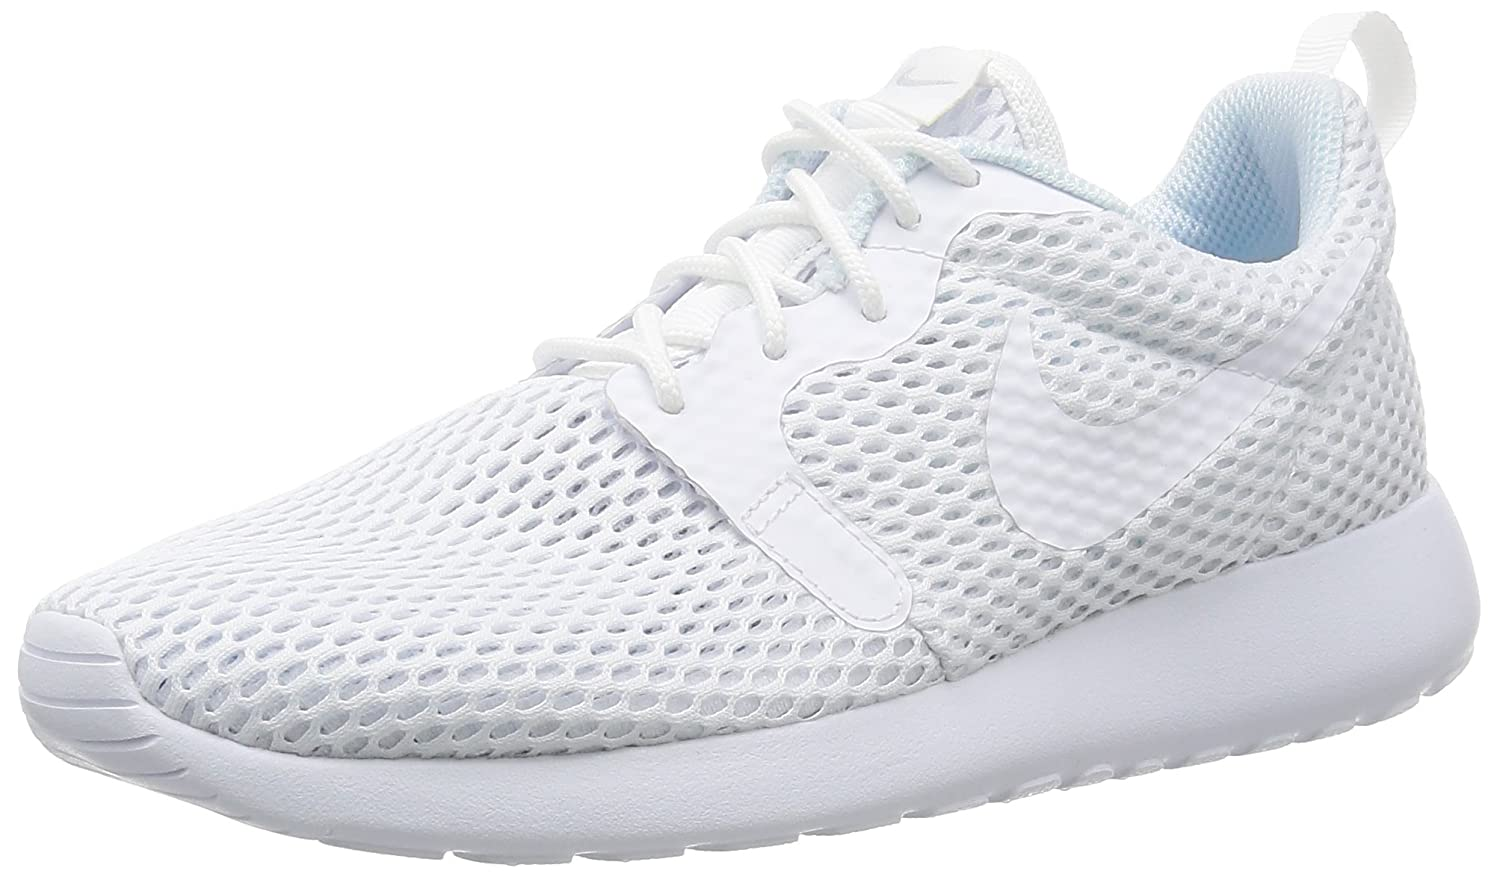 8006f8c89c0 Nike Women s Roshe One Hyperfuse Br Training Running Shoes  Amazon.co.uk   Shoes   Bags